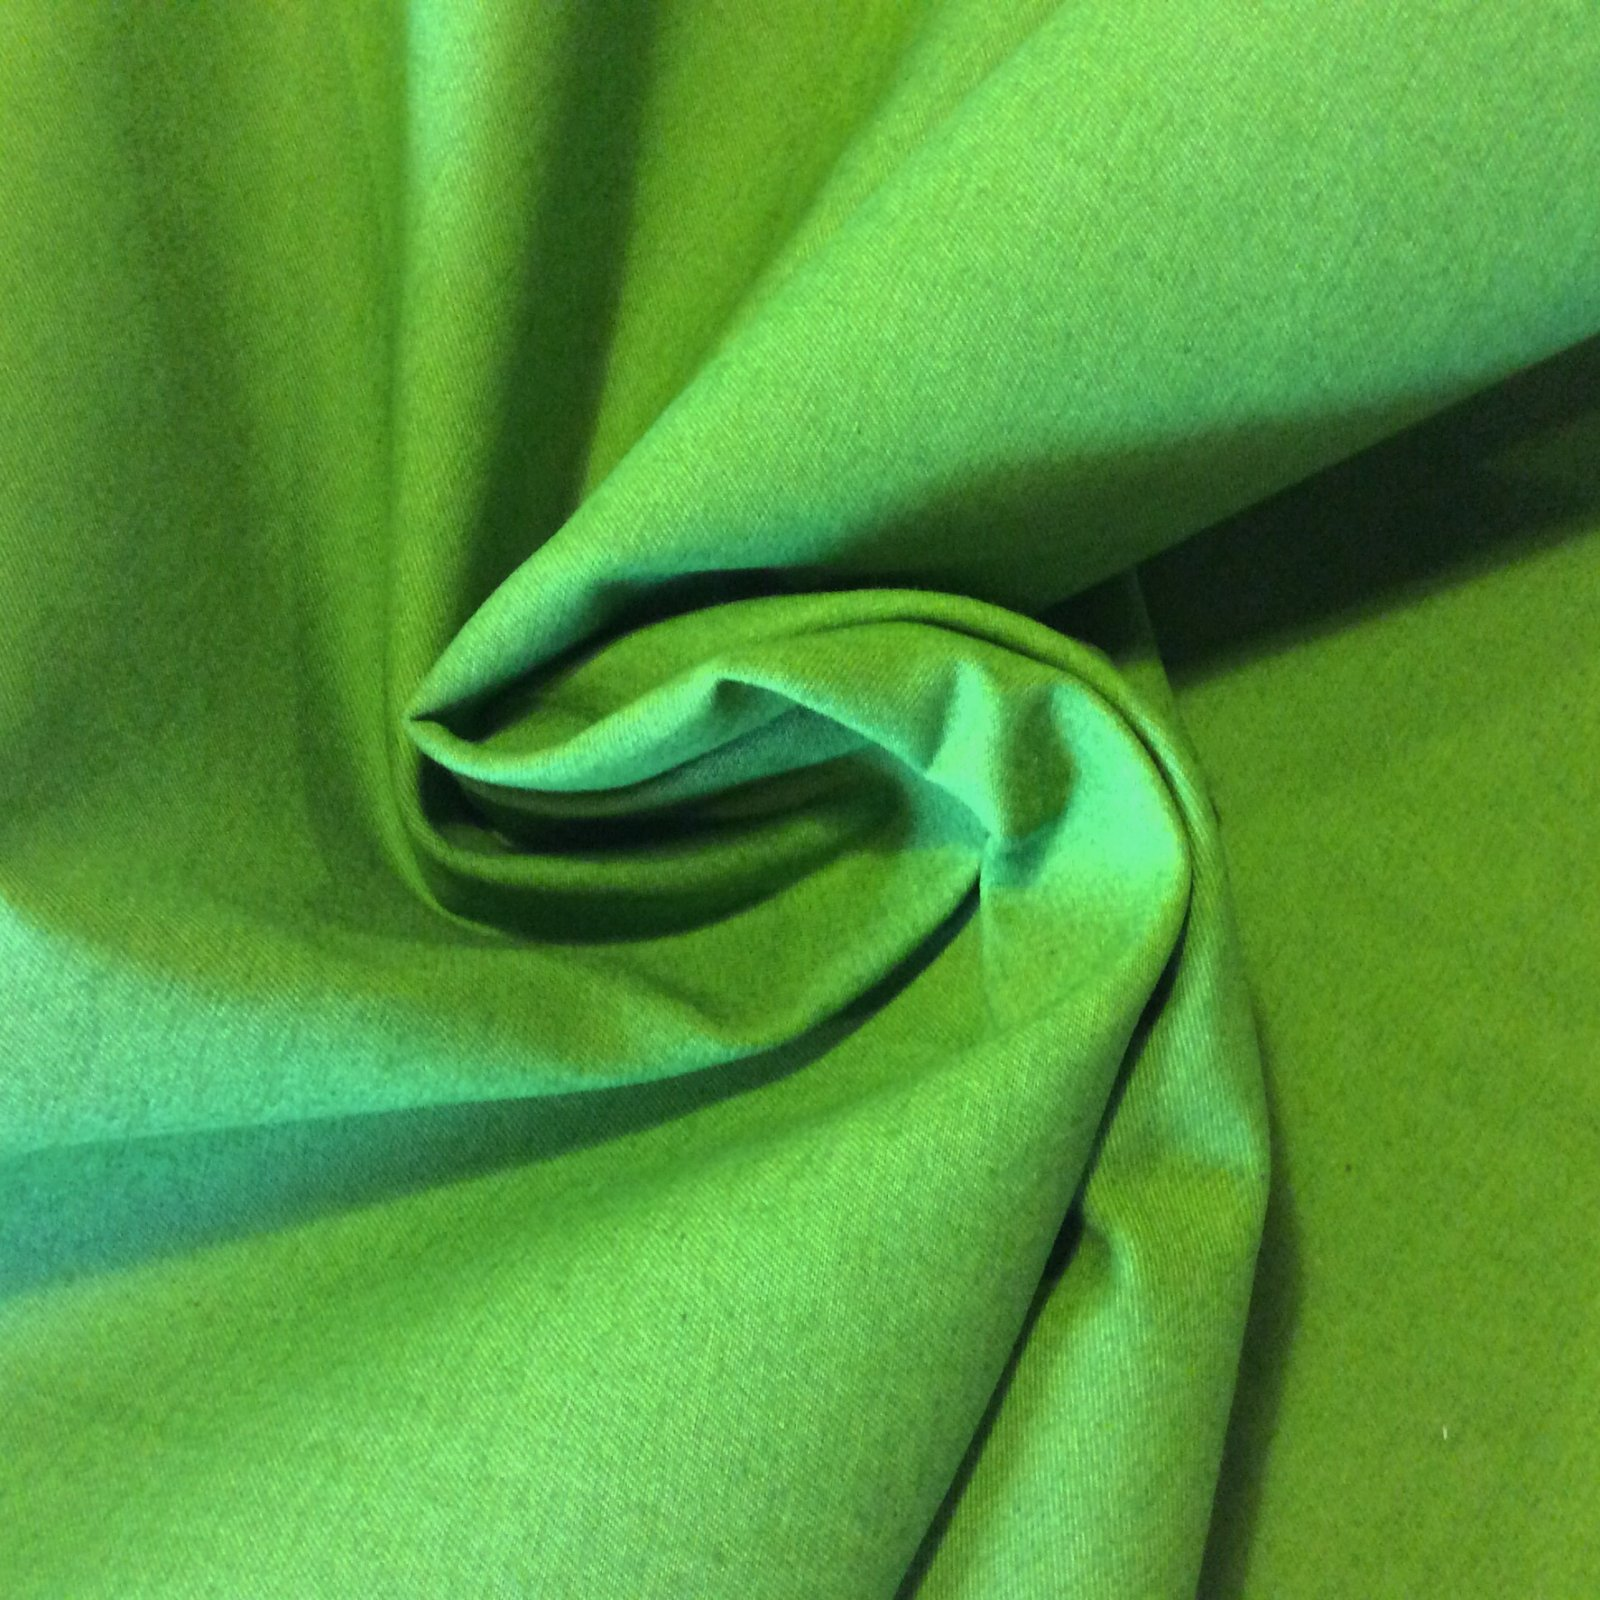 Green Heavy Sportswear Denim 66 Wide Fabric APL100 PIX